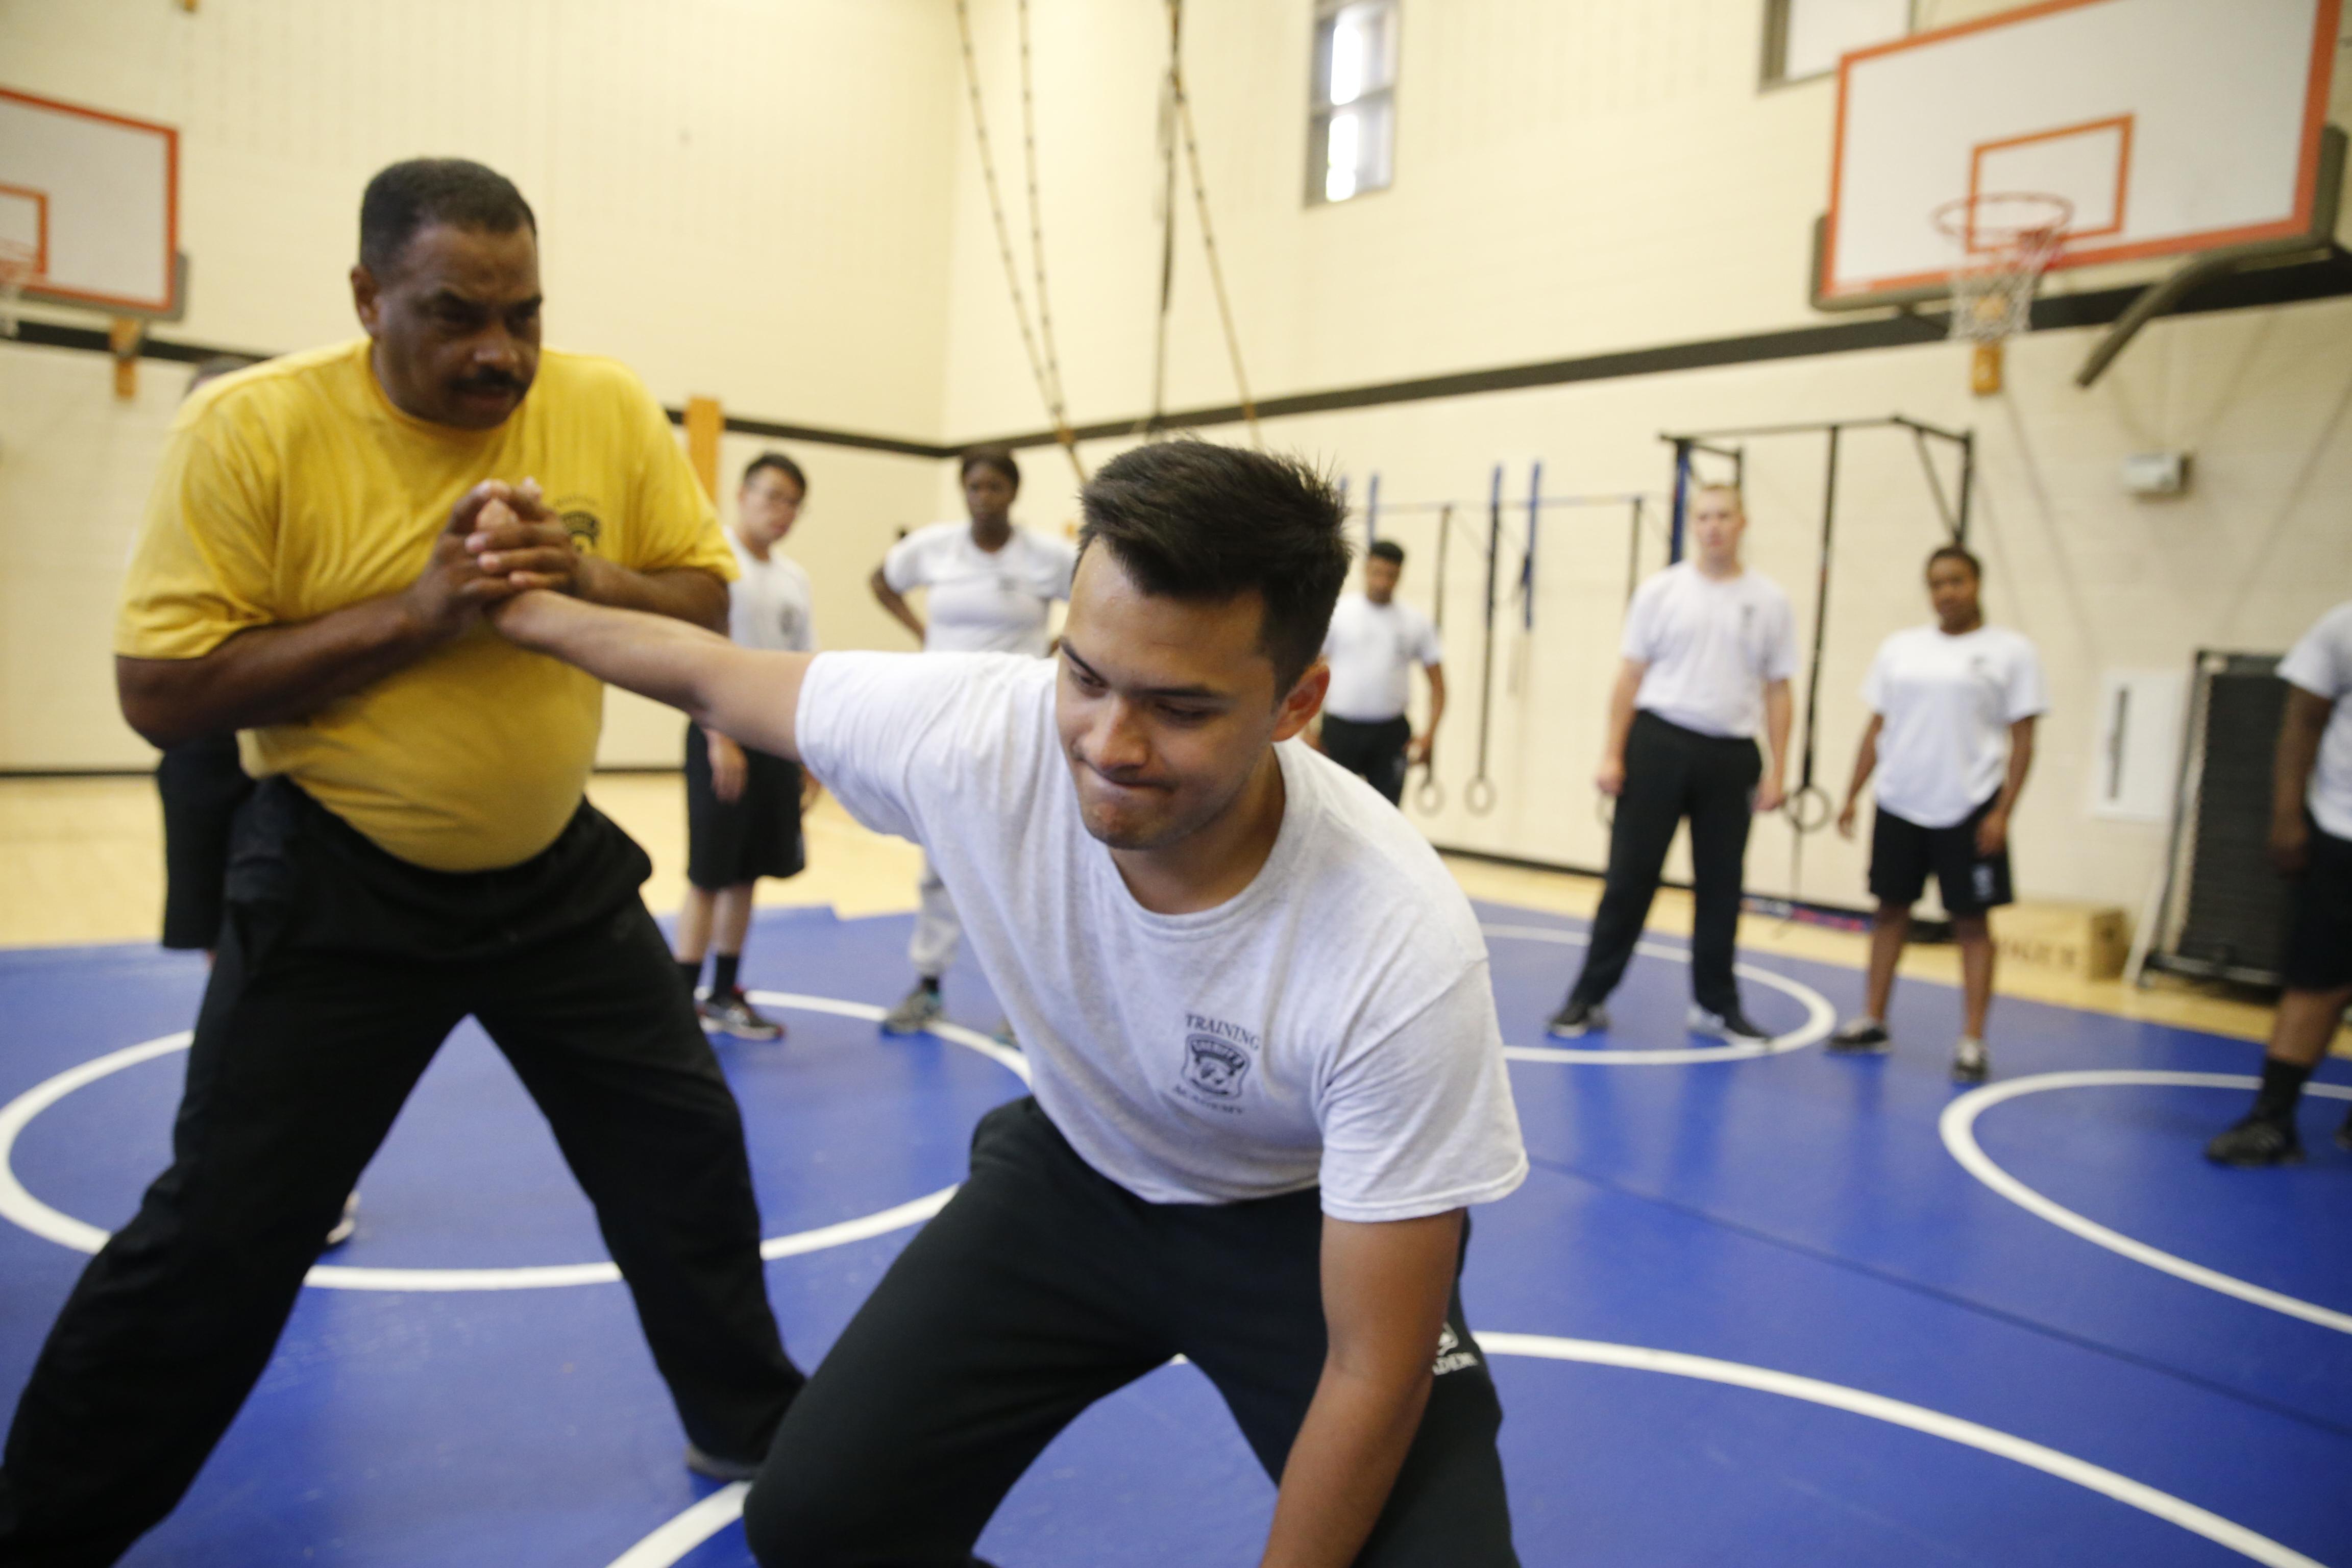 Academy recruit, Agustin Hussain, right, is subdued by Sergeant David Turner, left, during a course on the the finer points of hand-to-hand defensive techniques on July 13.